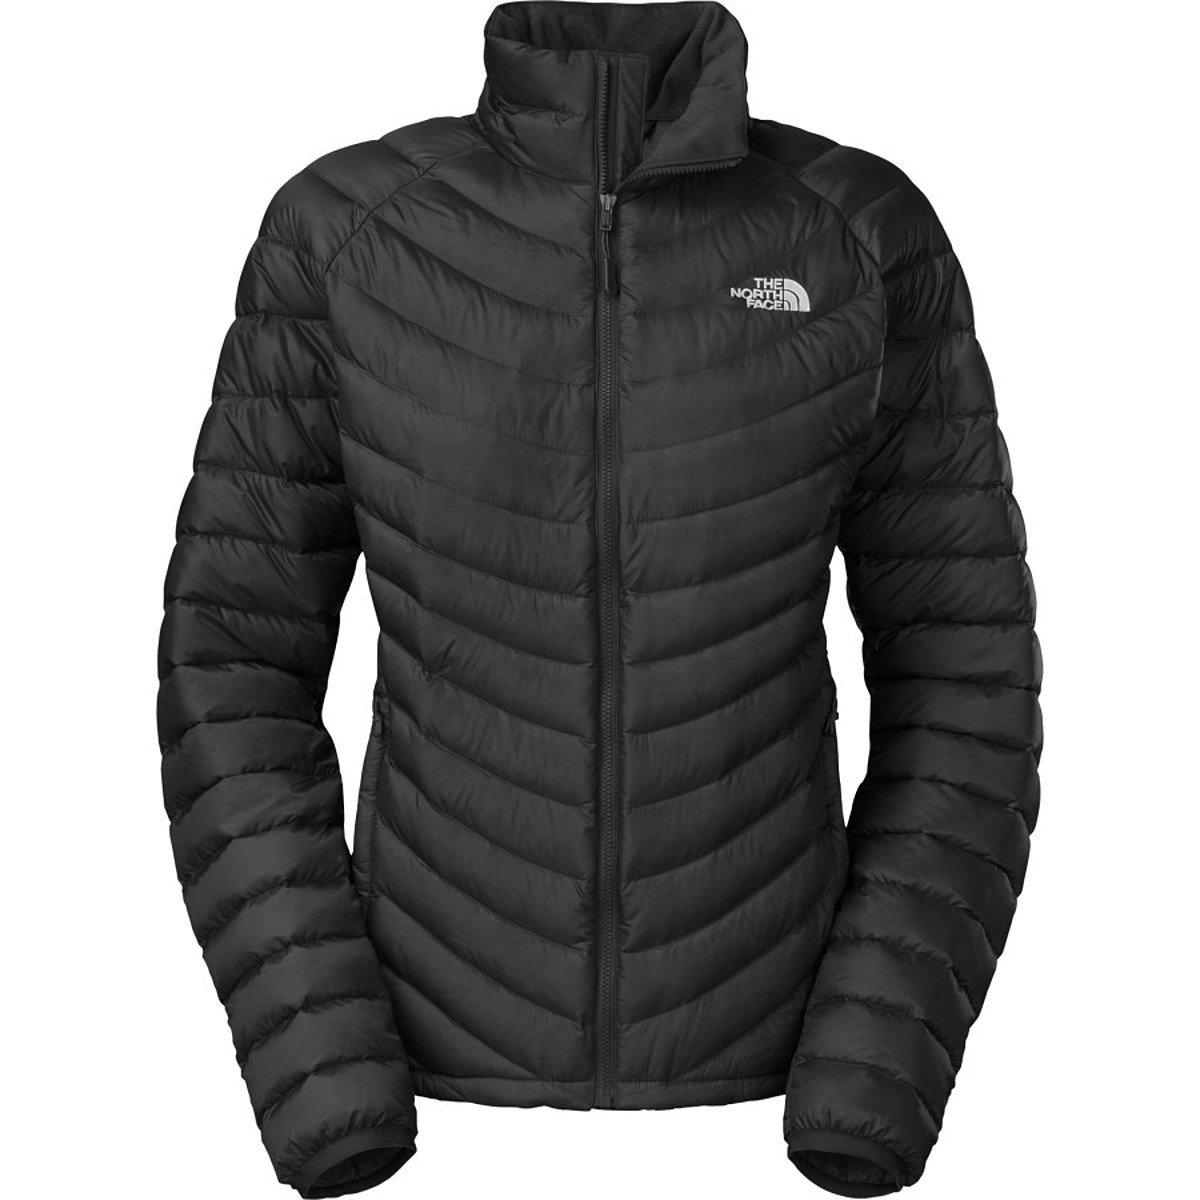 The North Face Thunder Jacket